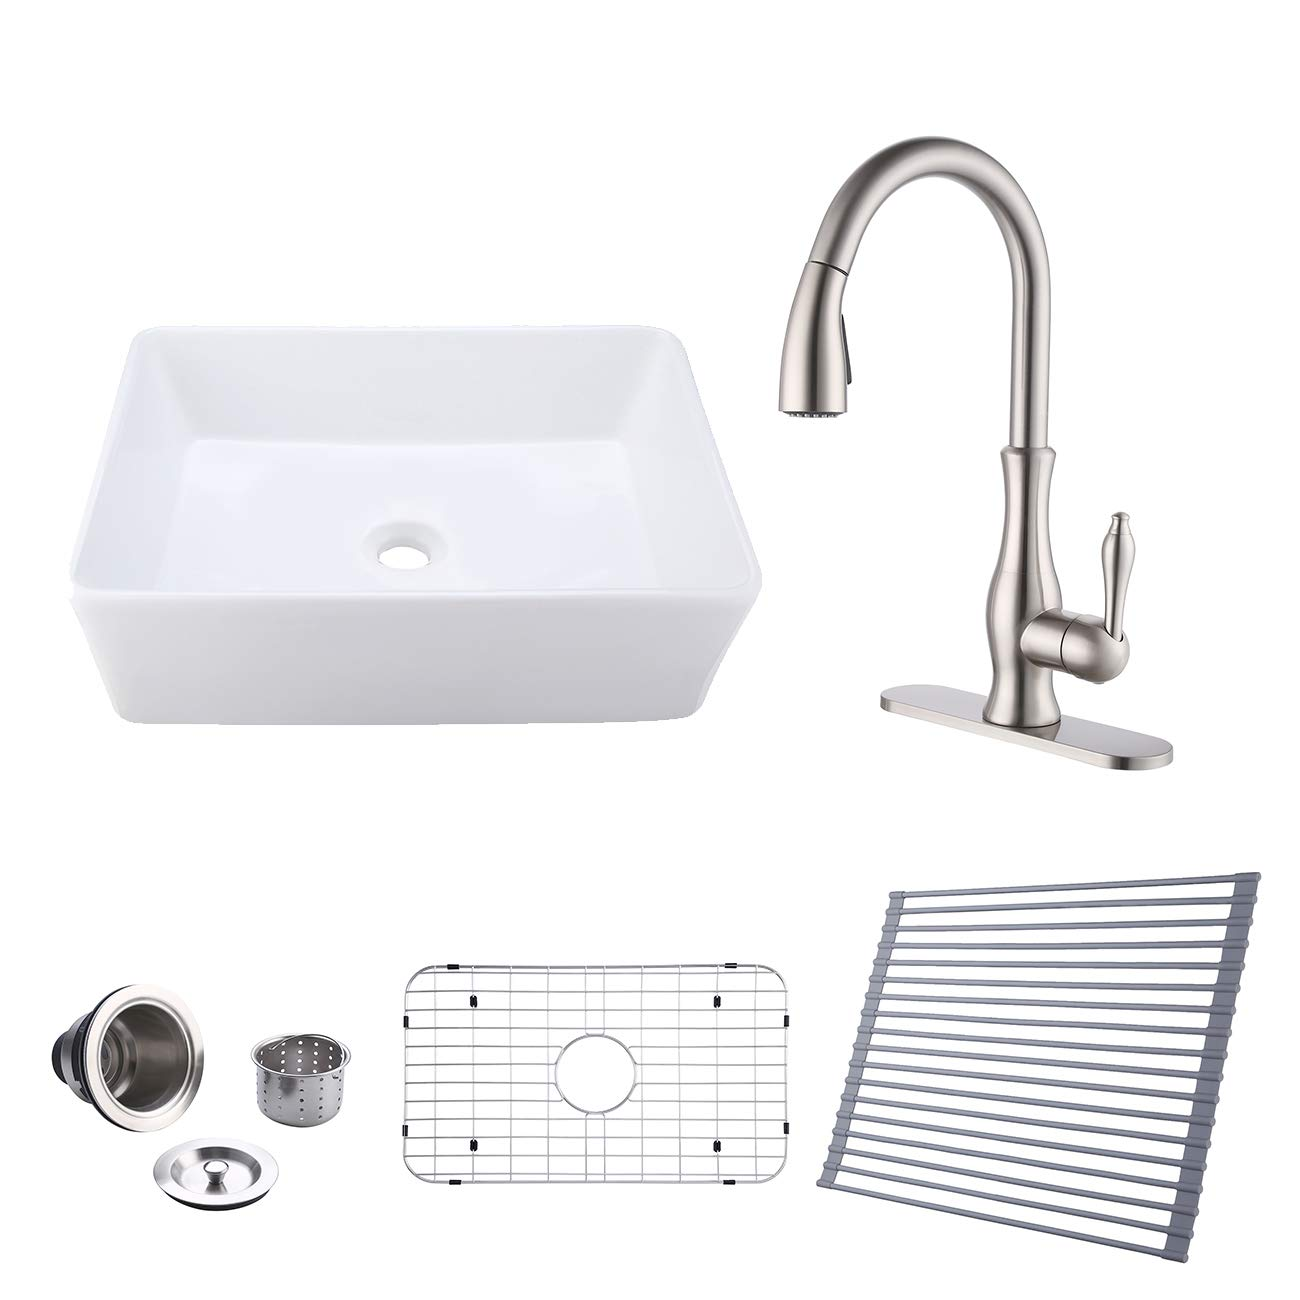 Kes White Farmhouse Sink 30 Inch Apron Front Single Bowl With Pull Down Kitchen Faucet Sink Drain Dish Drying Rack Bottom Grid Combo Accessories Bvs117 C4 Amazon Com